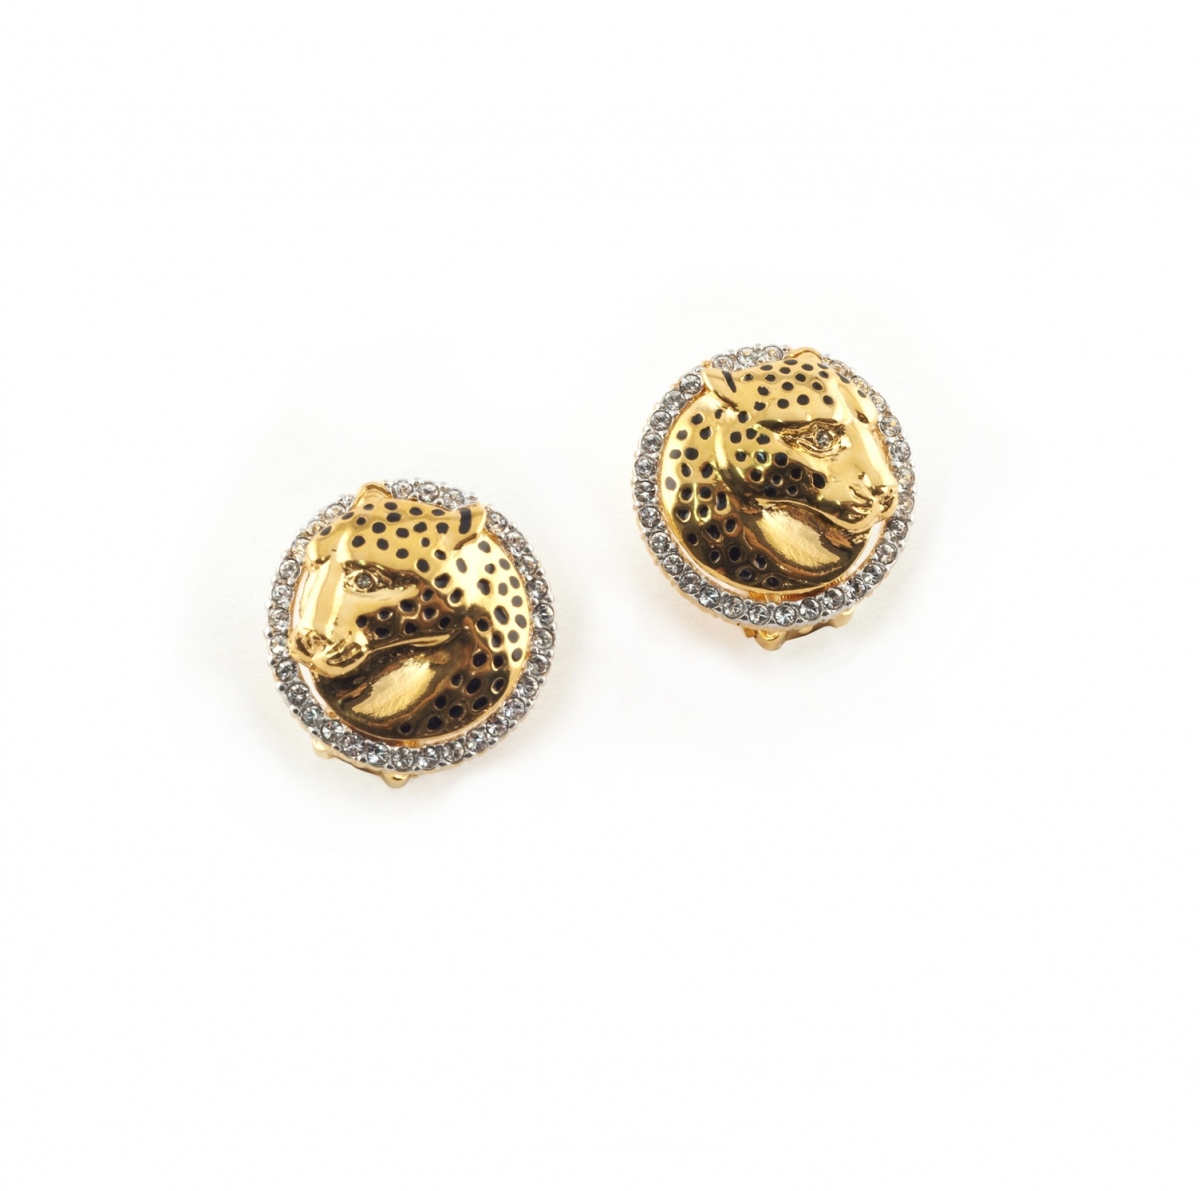 Leopard Clip Earrings